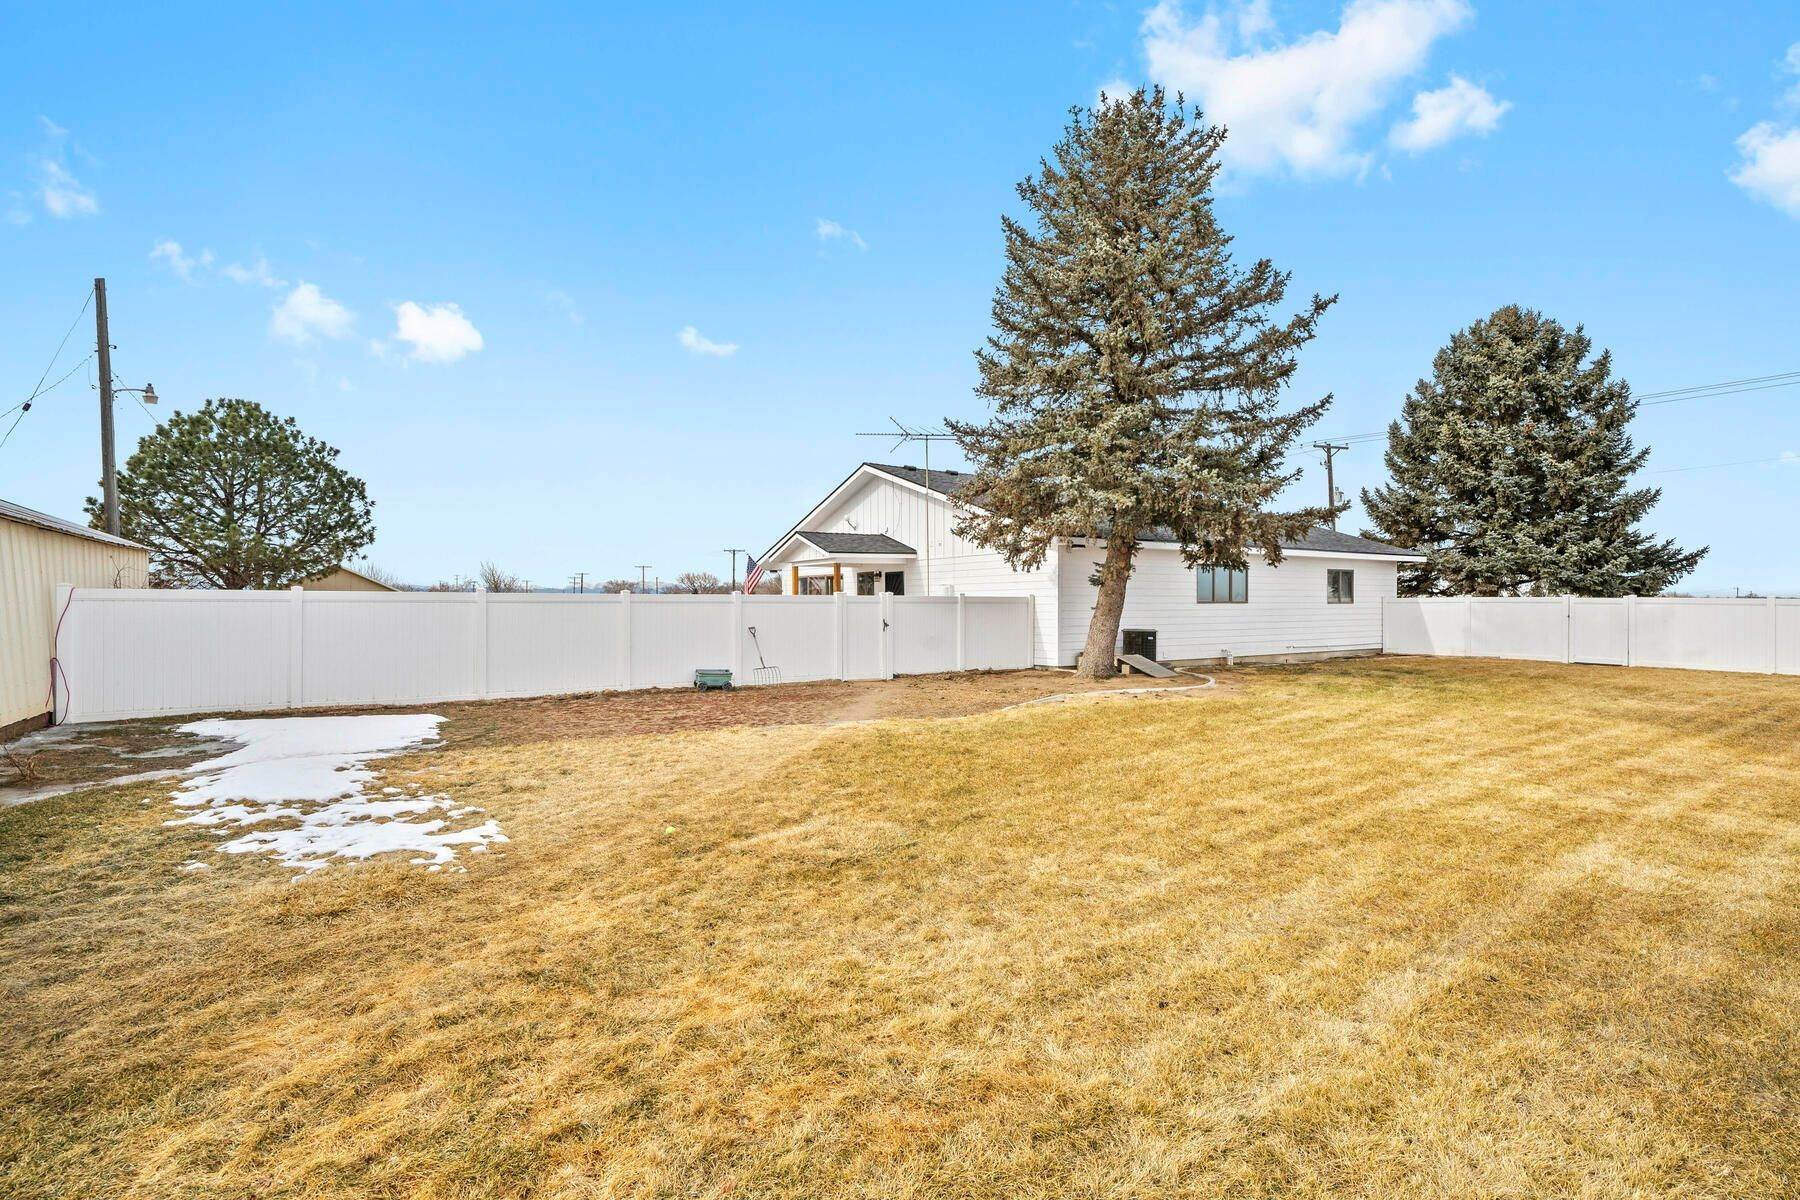 33. Single Family Homes for Active at Colorado Farmhouse of Your Dreams Nestled on Just Over Two Acres 15614 County Road 42 La Salle, Colorado 80645 United States